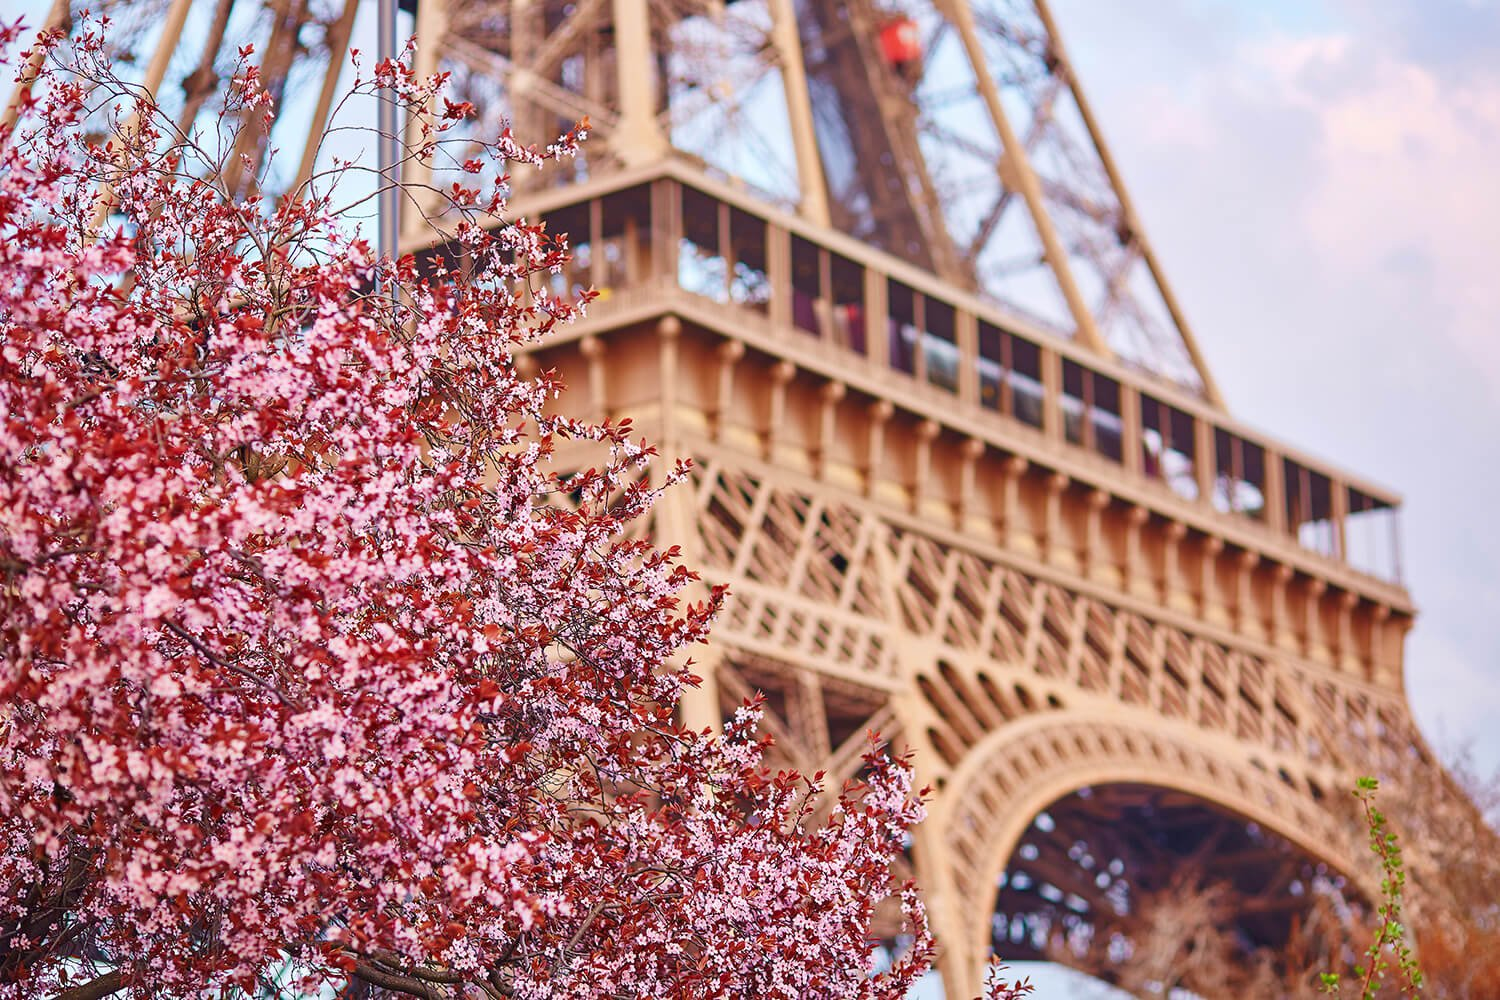 parisblossoms